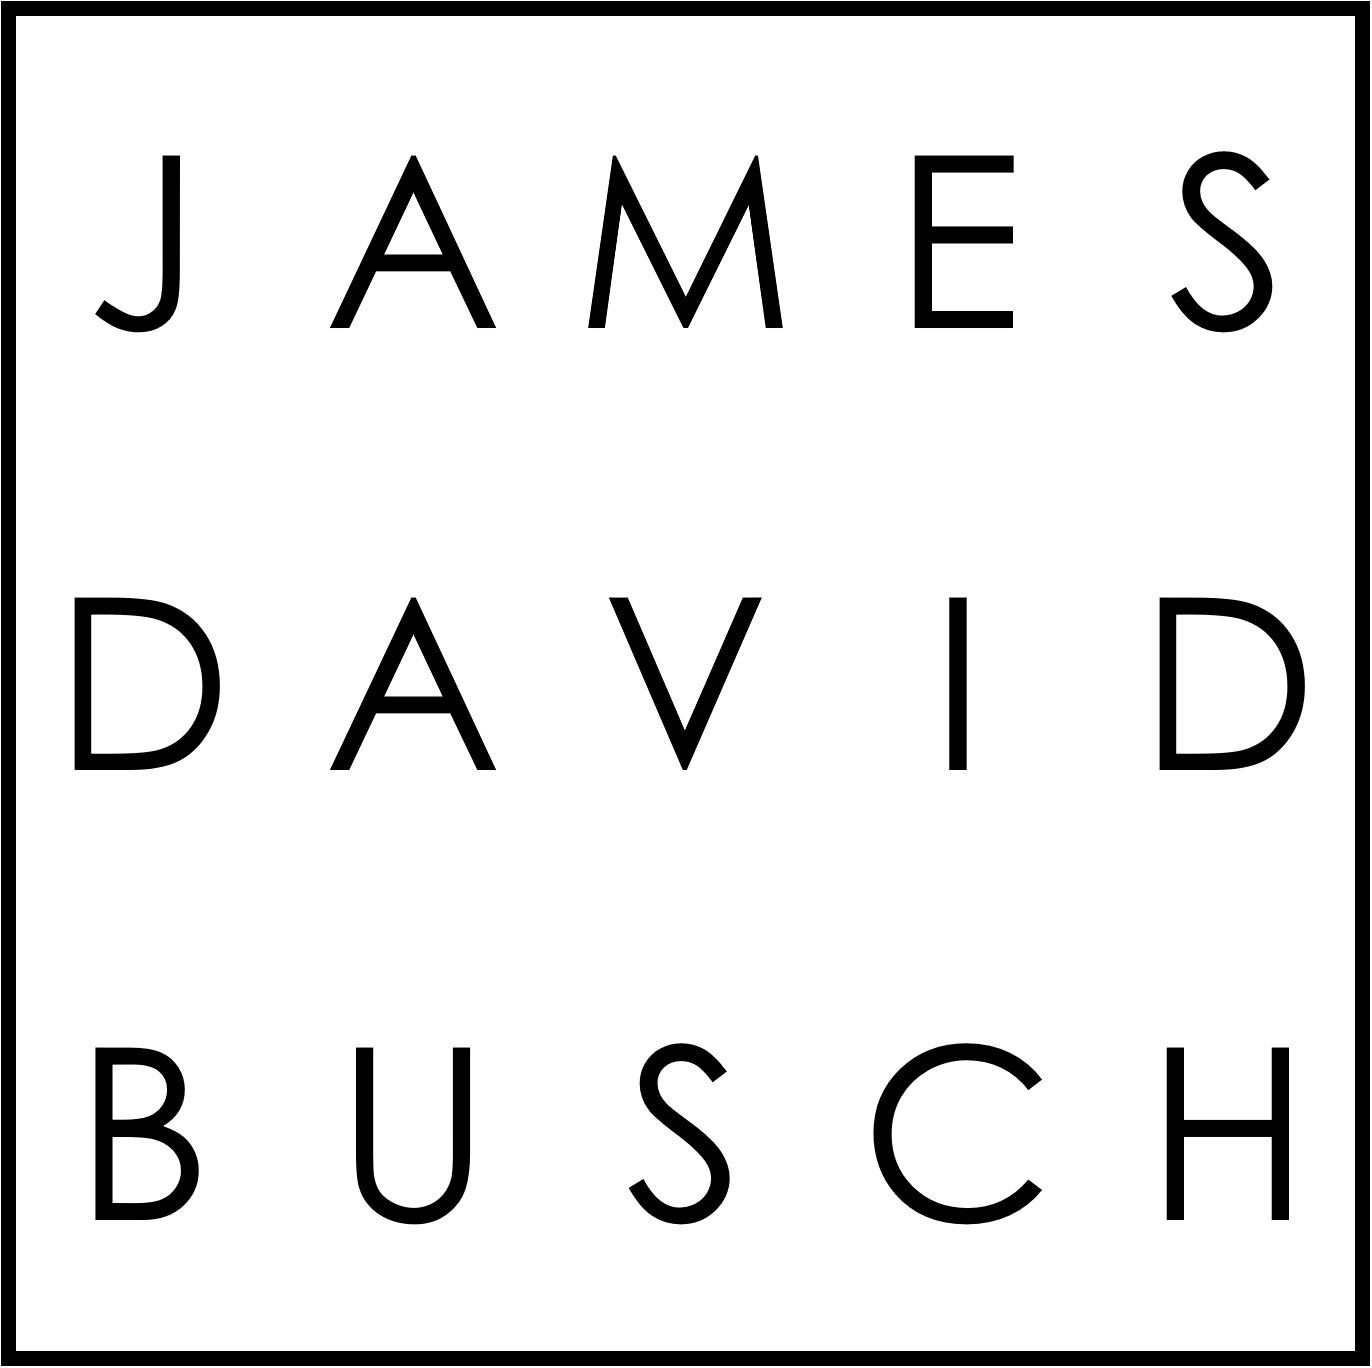 Contingent Fee Patent Law • The Law Offices of James David Busch LLC